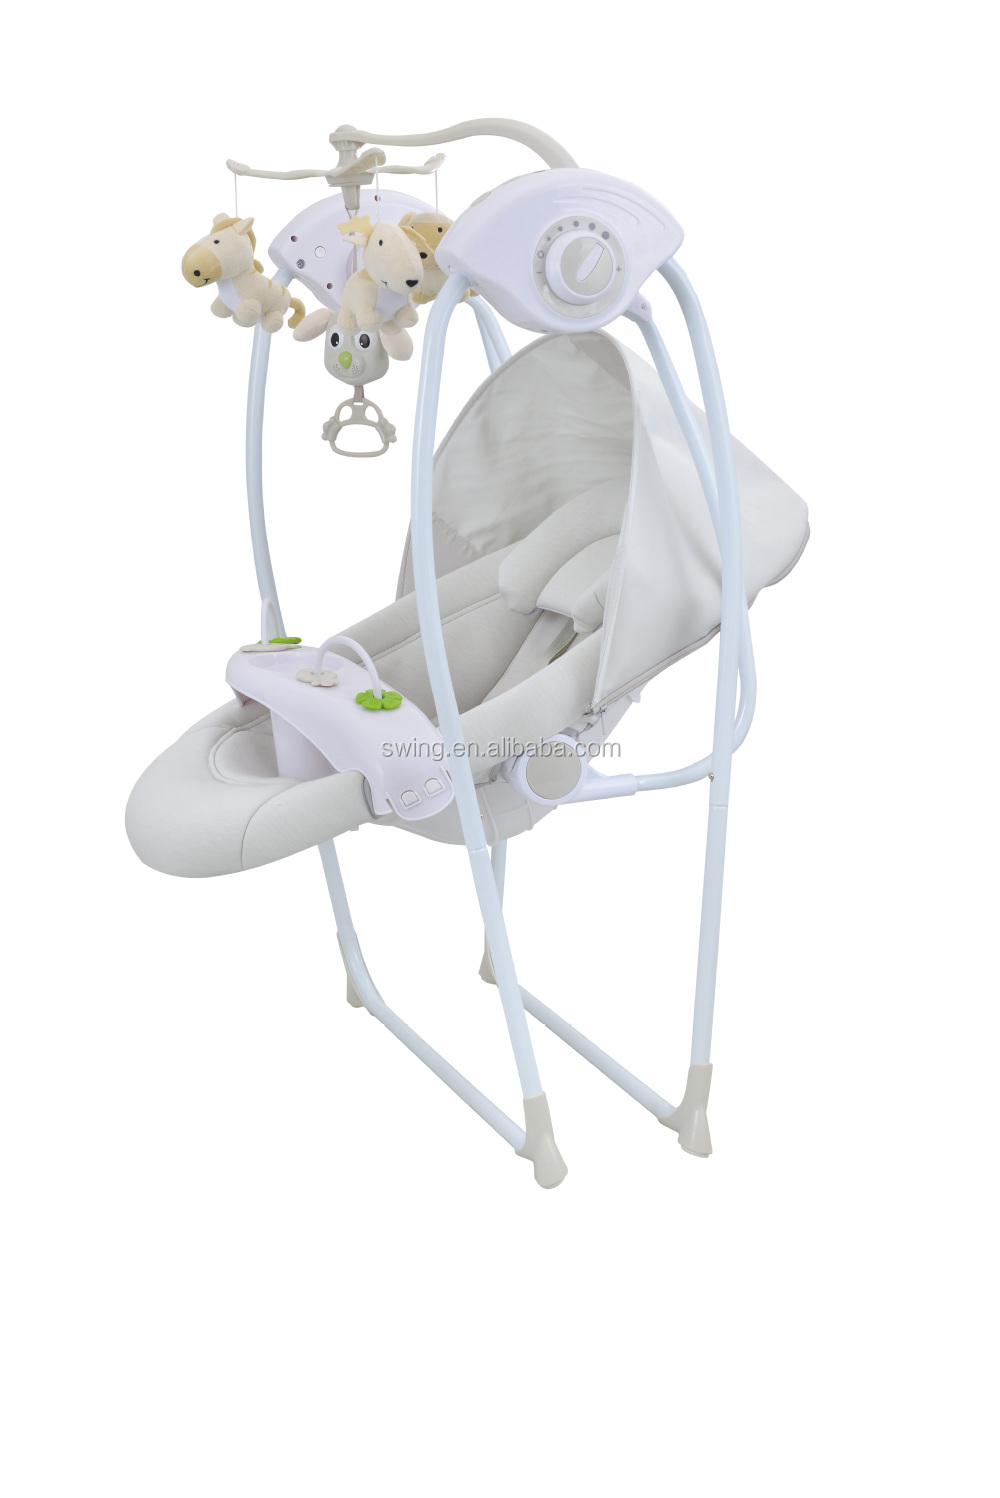 Electric baby rocker chair - Electric Baby Swing Baby Bed Baby Rocking Seat